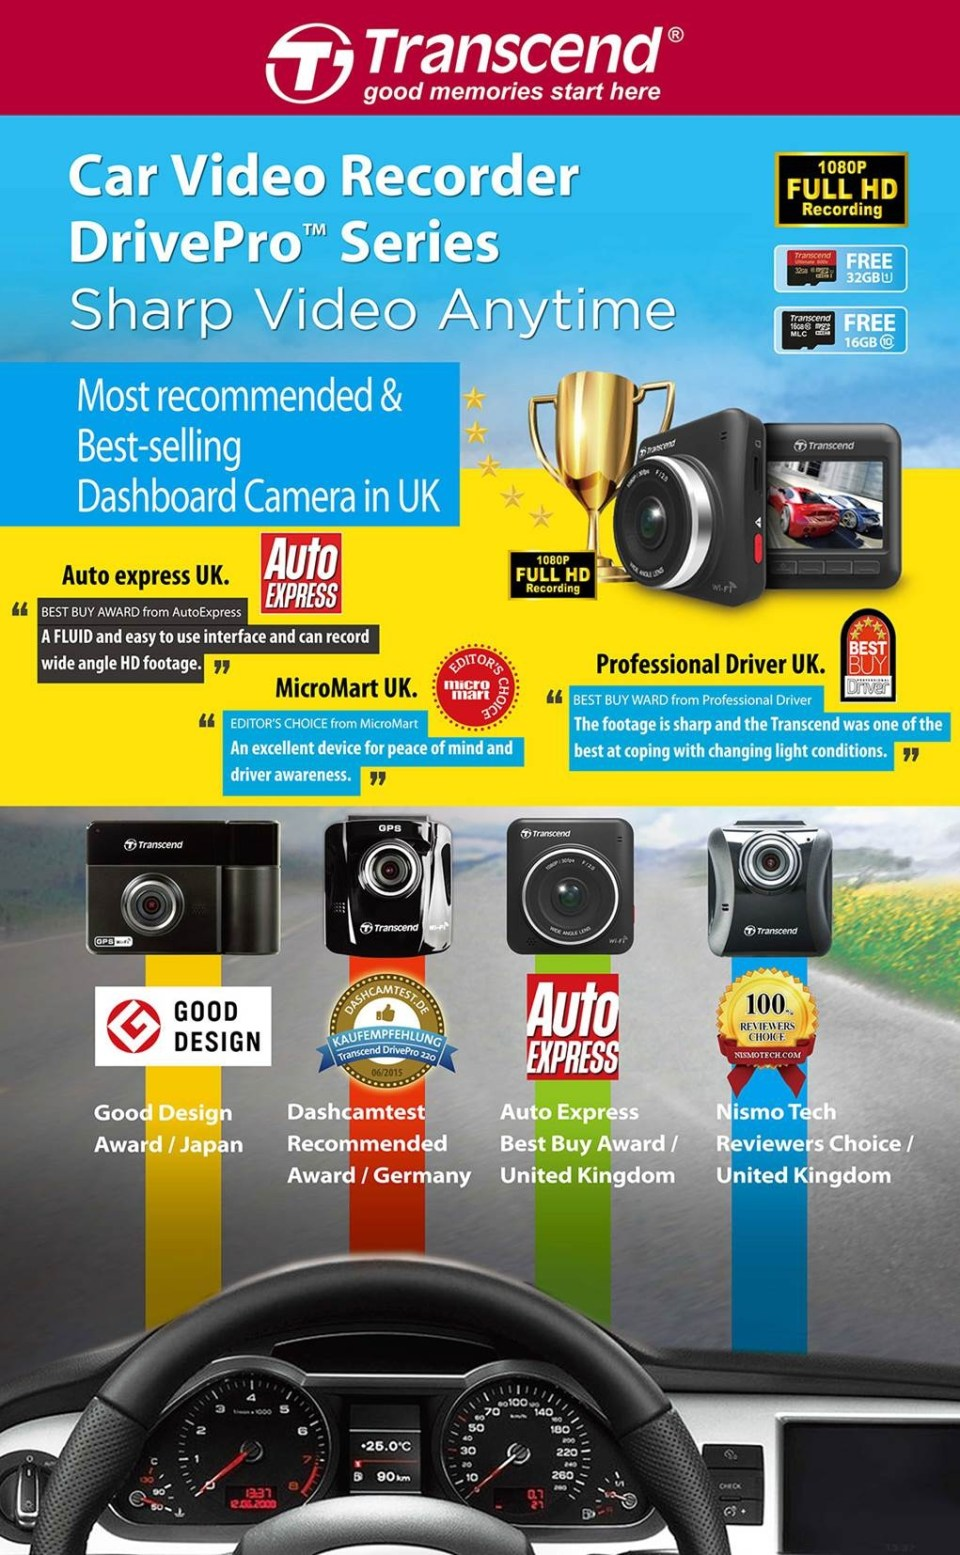 Transcend DrivePro Car Video Recorder Series Released